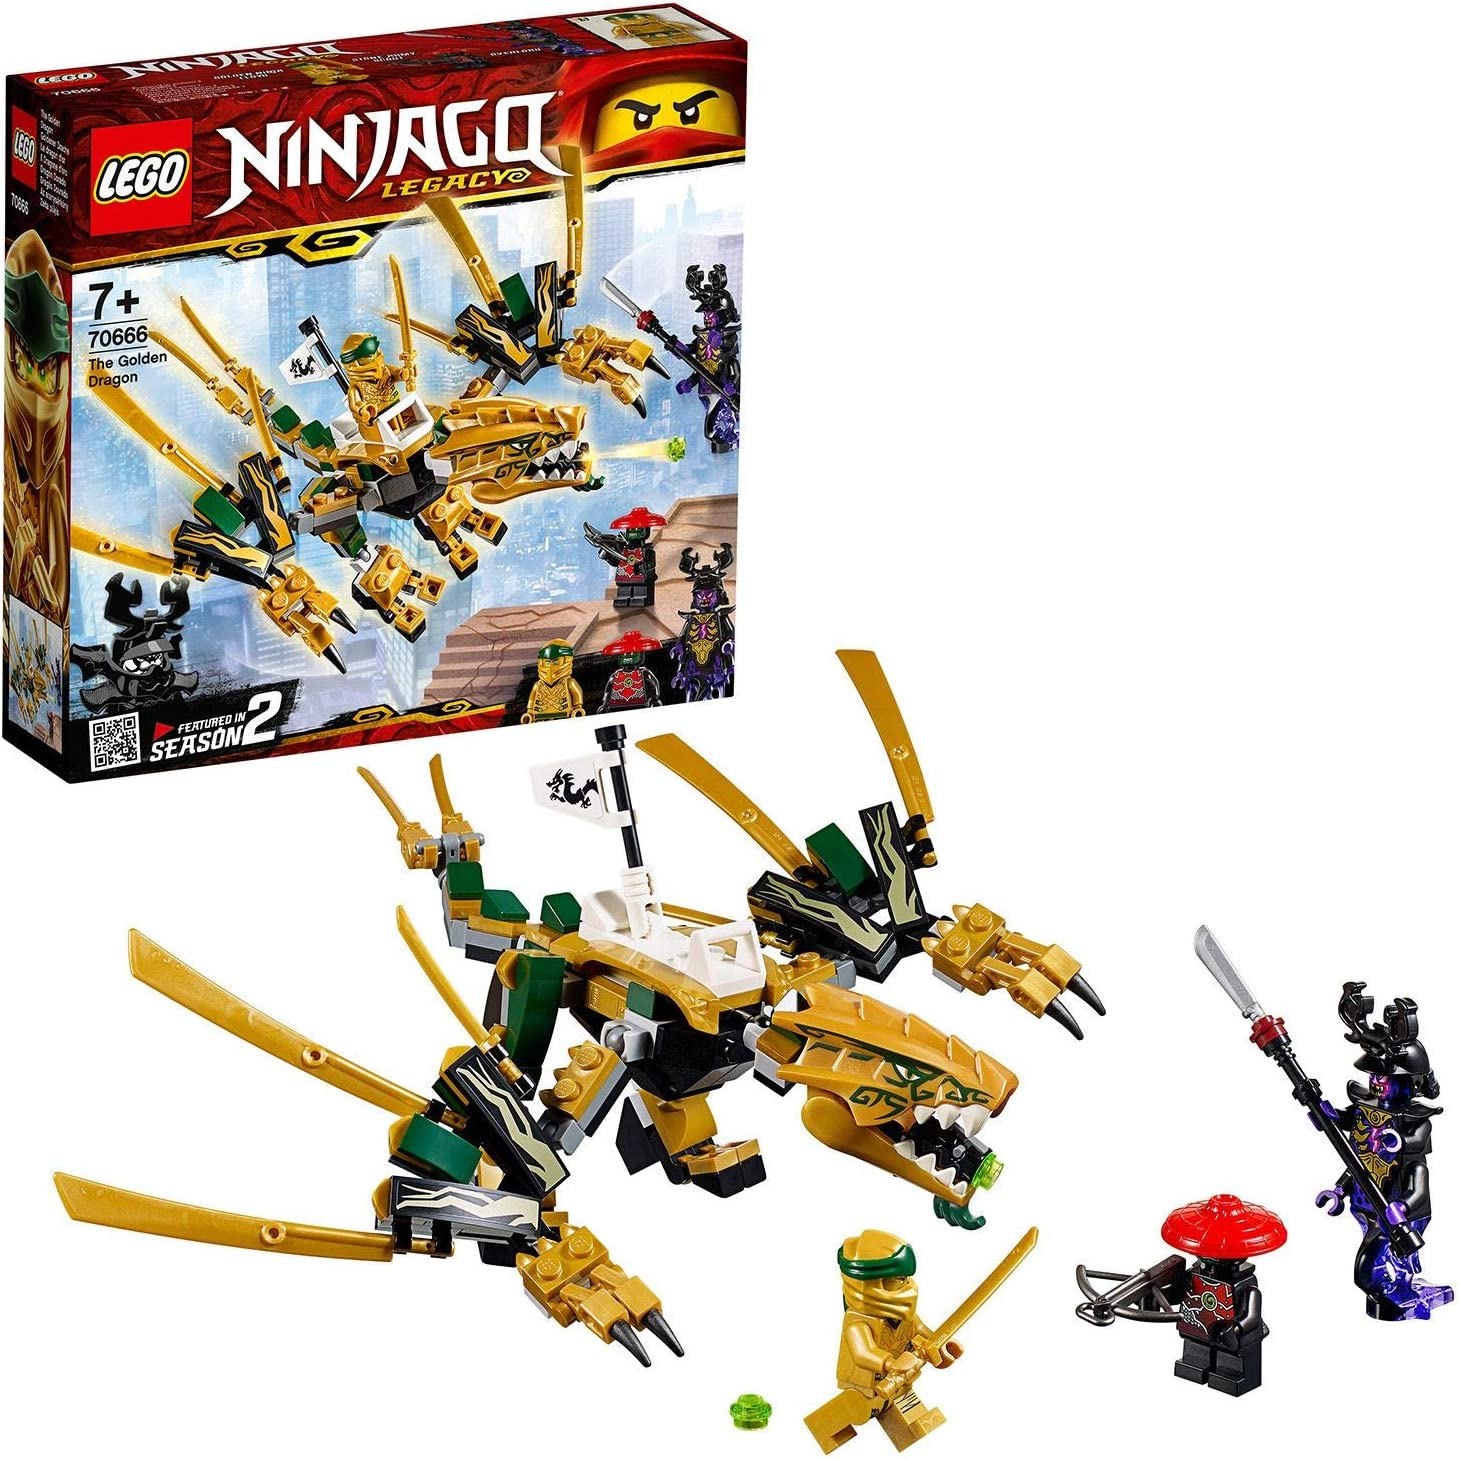 Amazon.com: LEGO Ninjago - Dragón Dorado (70666): Toys & Games